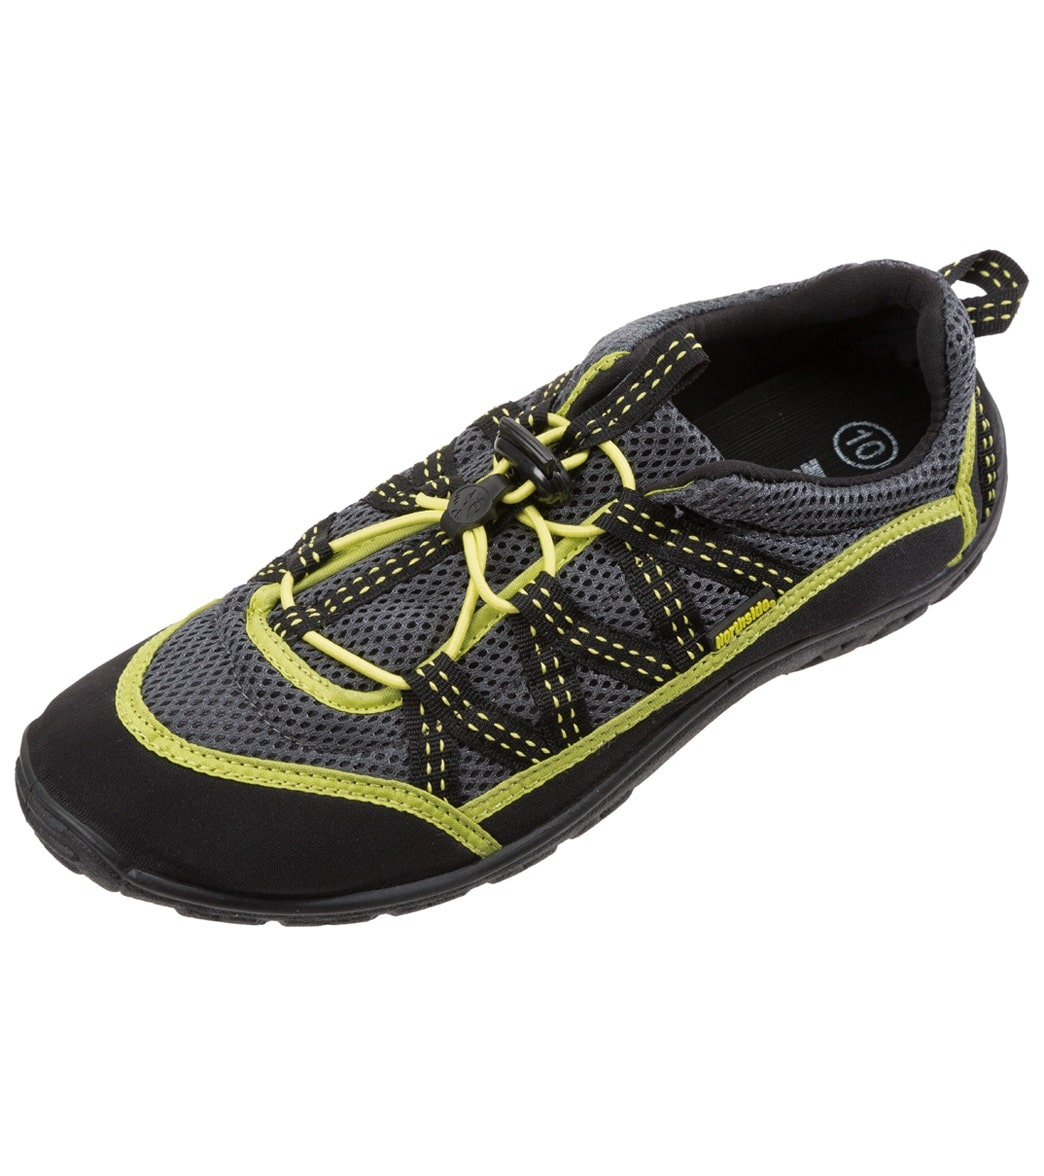 Men's Water Shoe